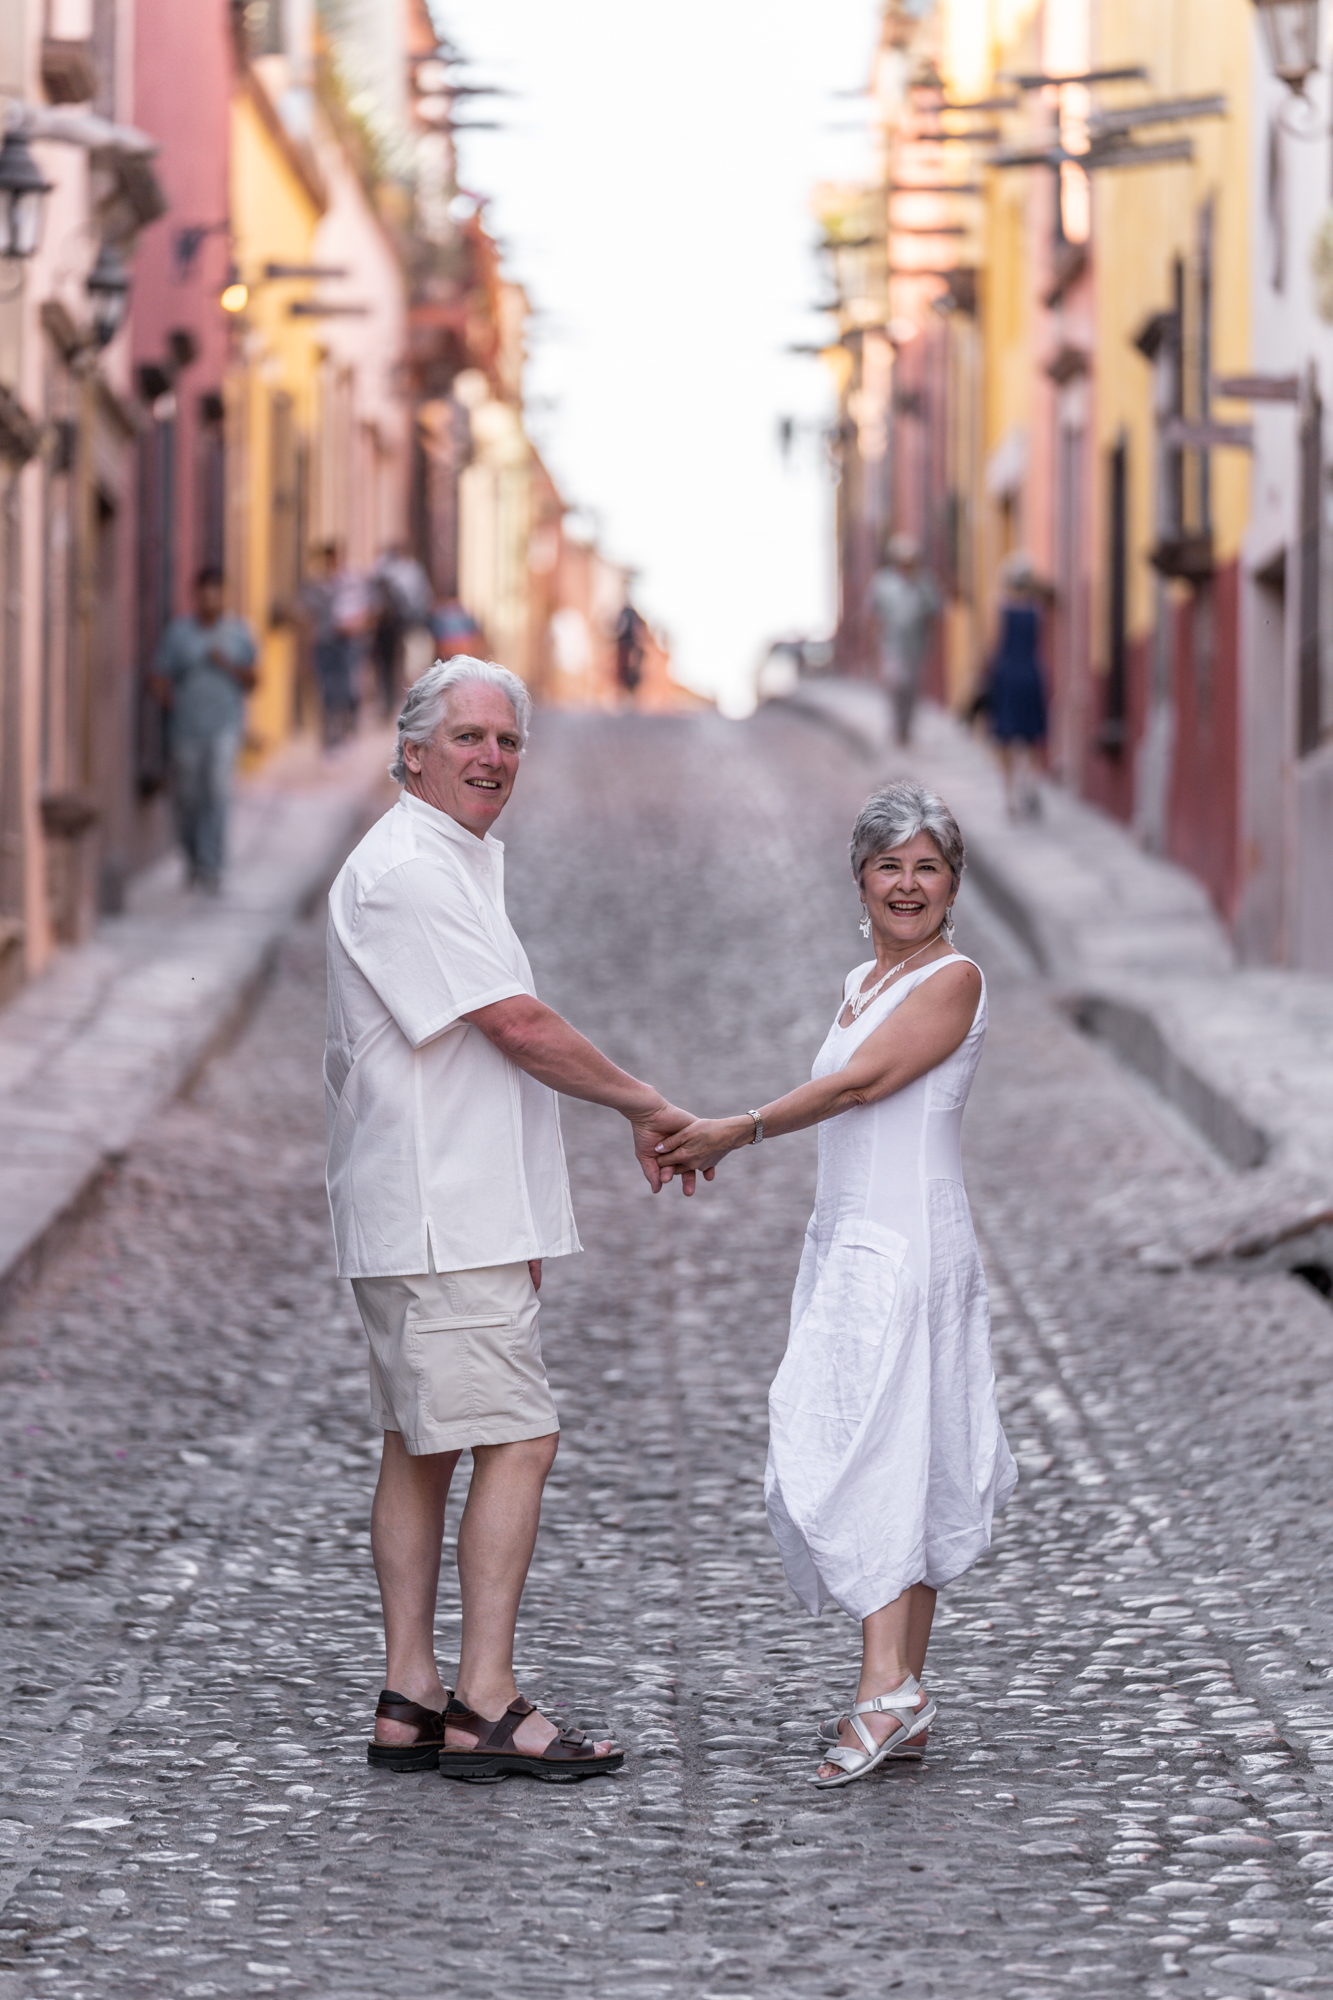 Photoshoot session in San Miguel de Allende with Suzanne and Leo-22.jpg